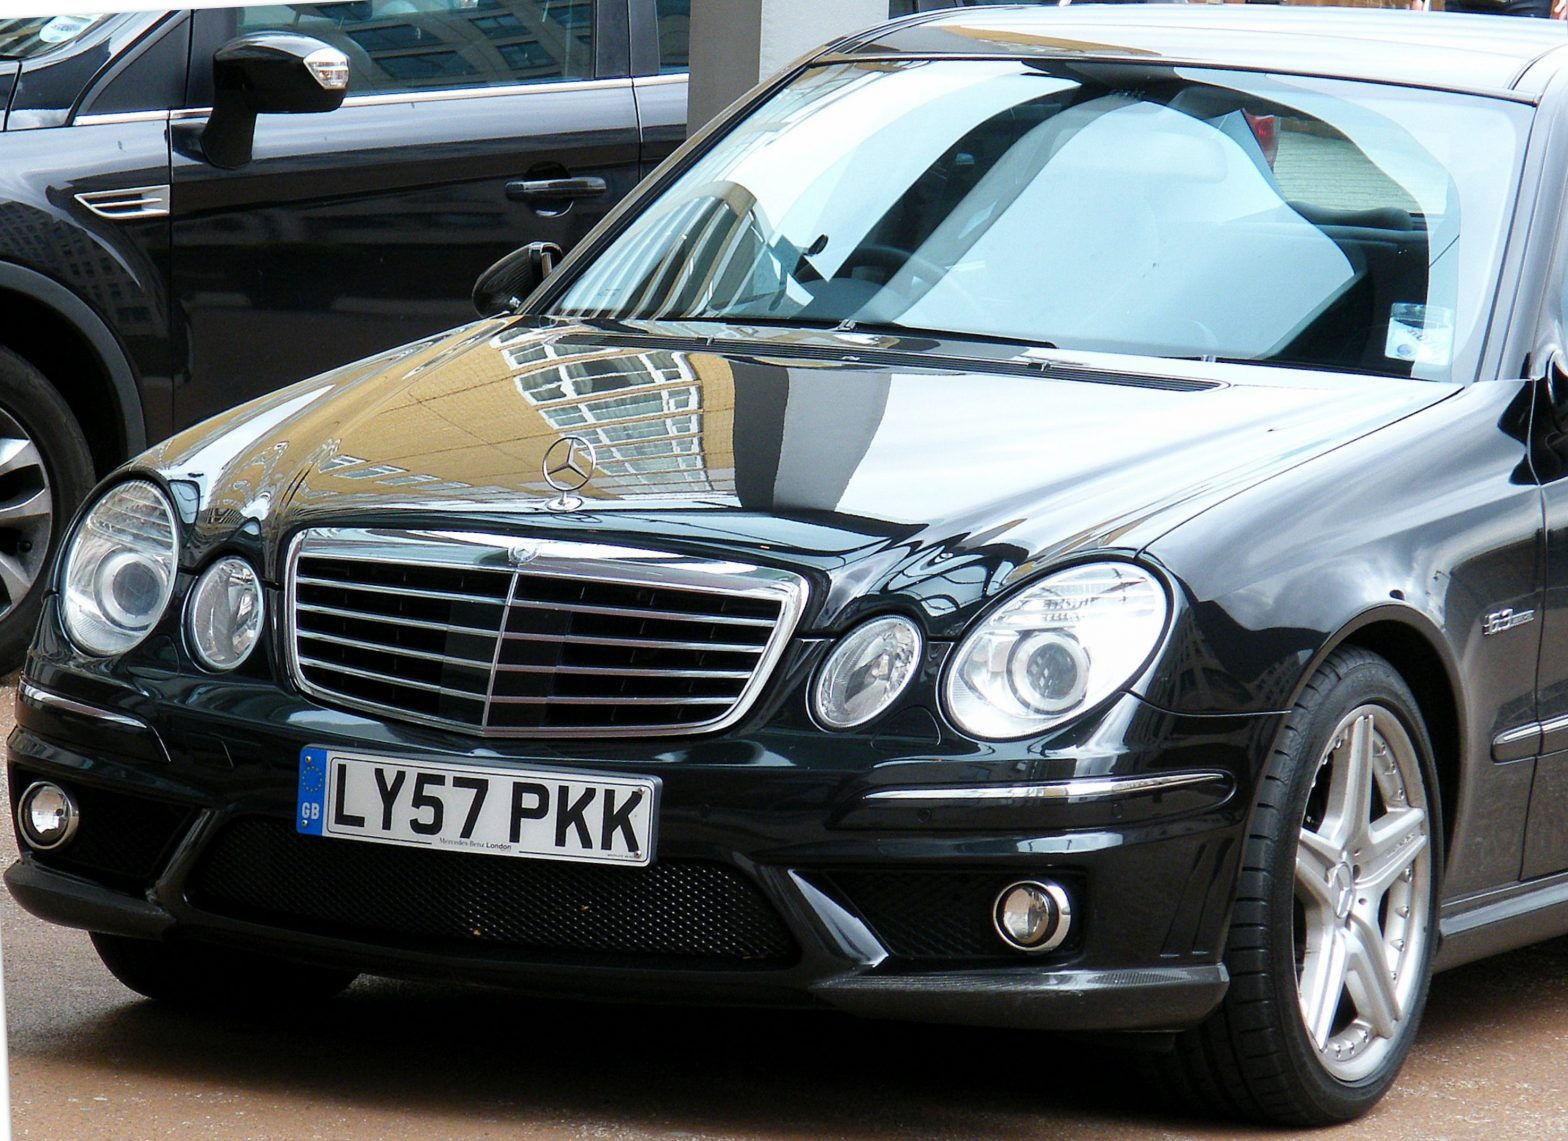 Mercedes Benz offers in BradfordMercedes Benz offers in Bradford